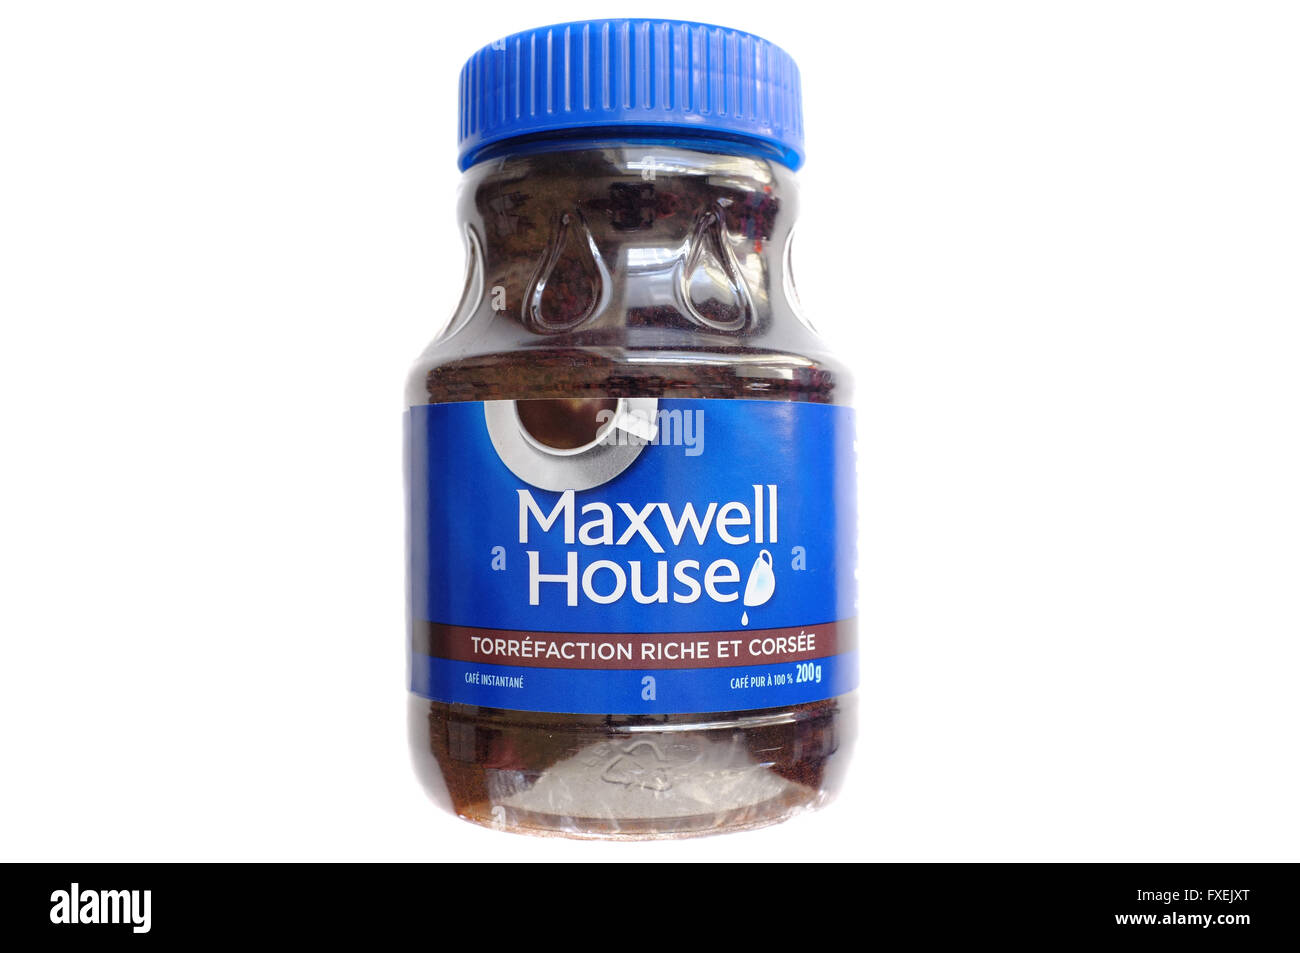 A French Labeled Jar Of Maxwell House Coffee Photographed